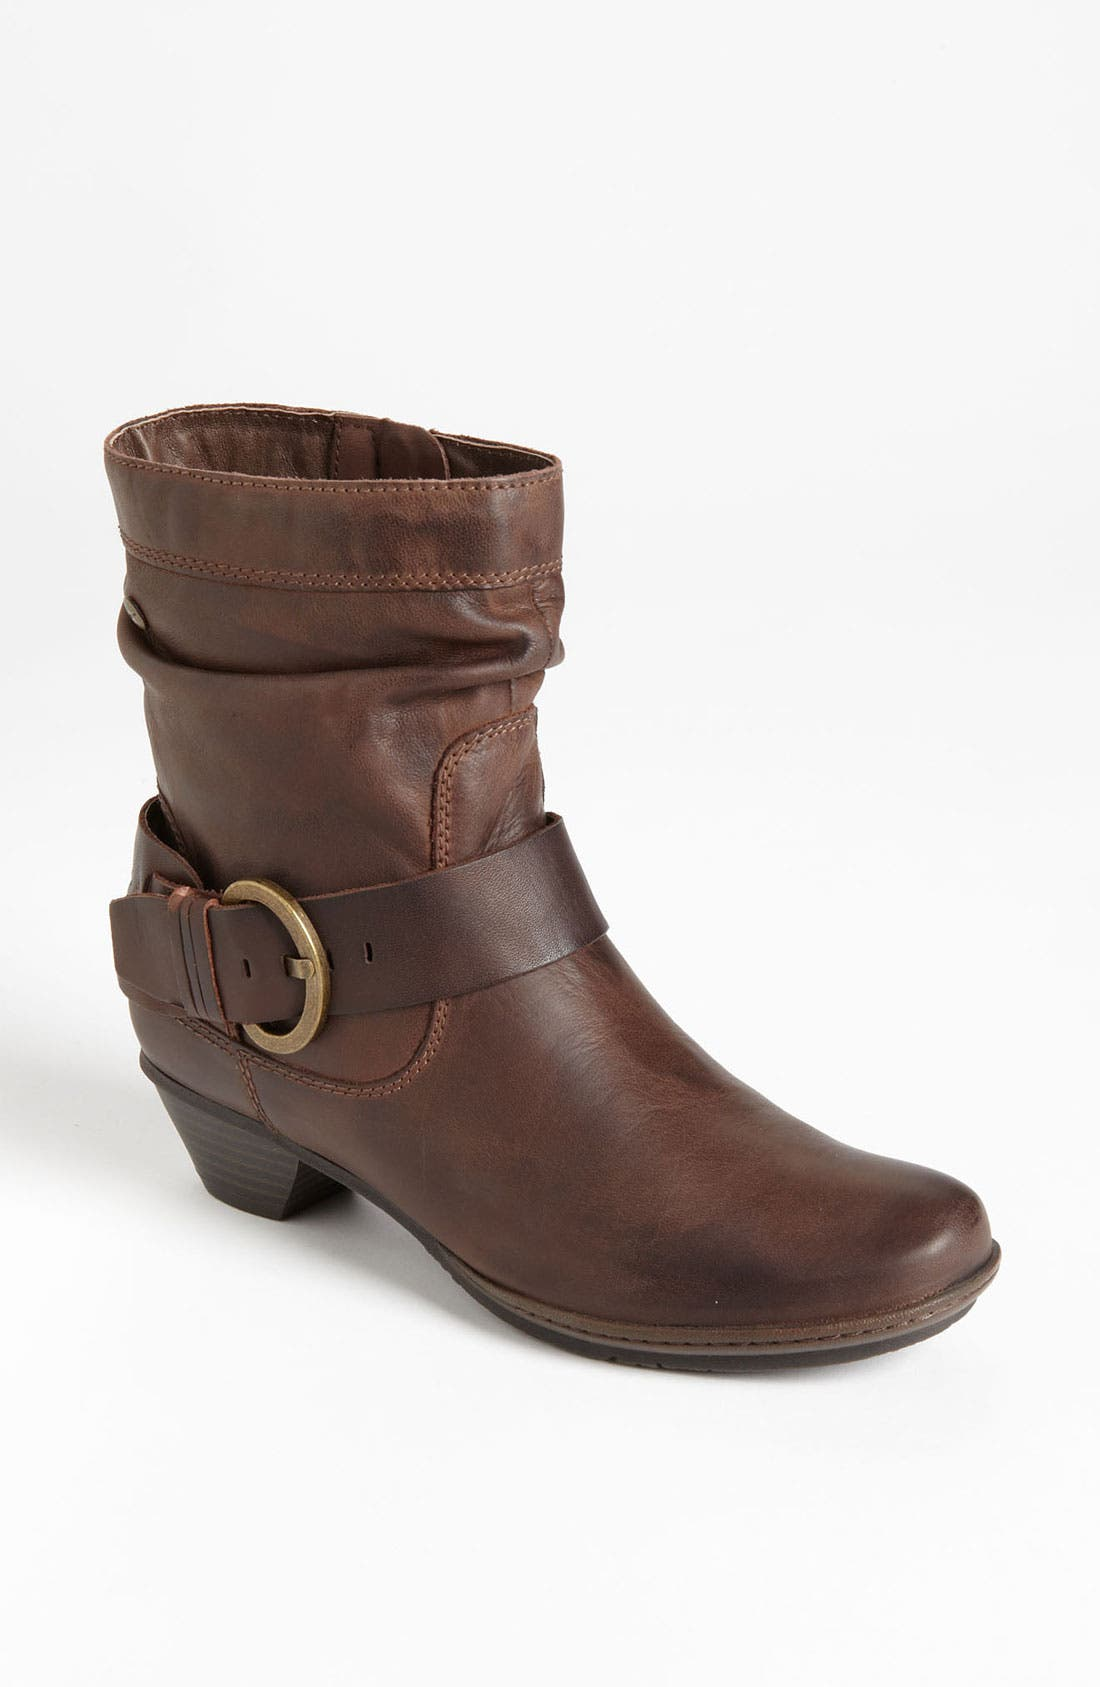 Main Image - PIKOLINOS 'Brujas' Ankle Boot (Women)